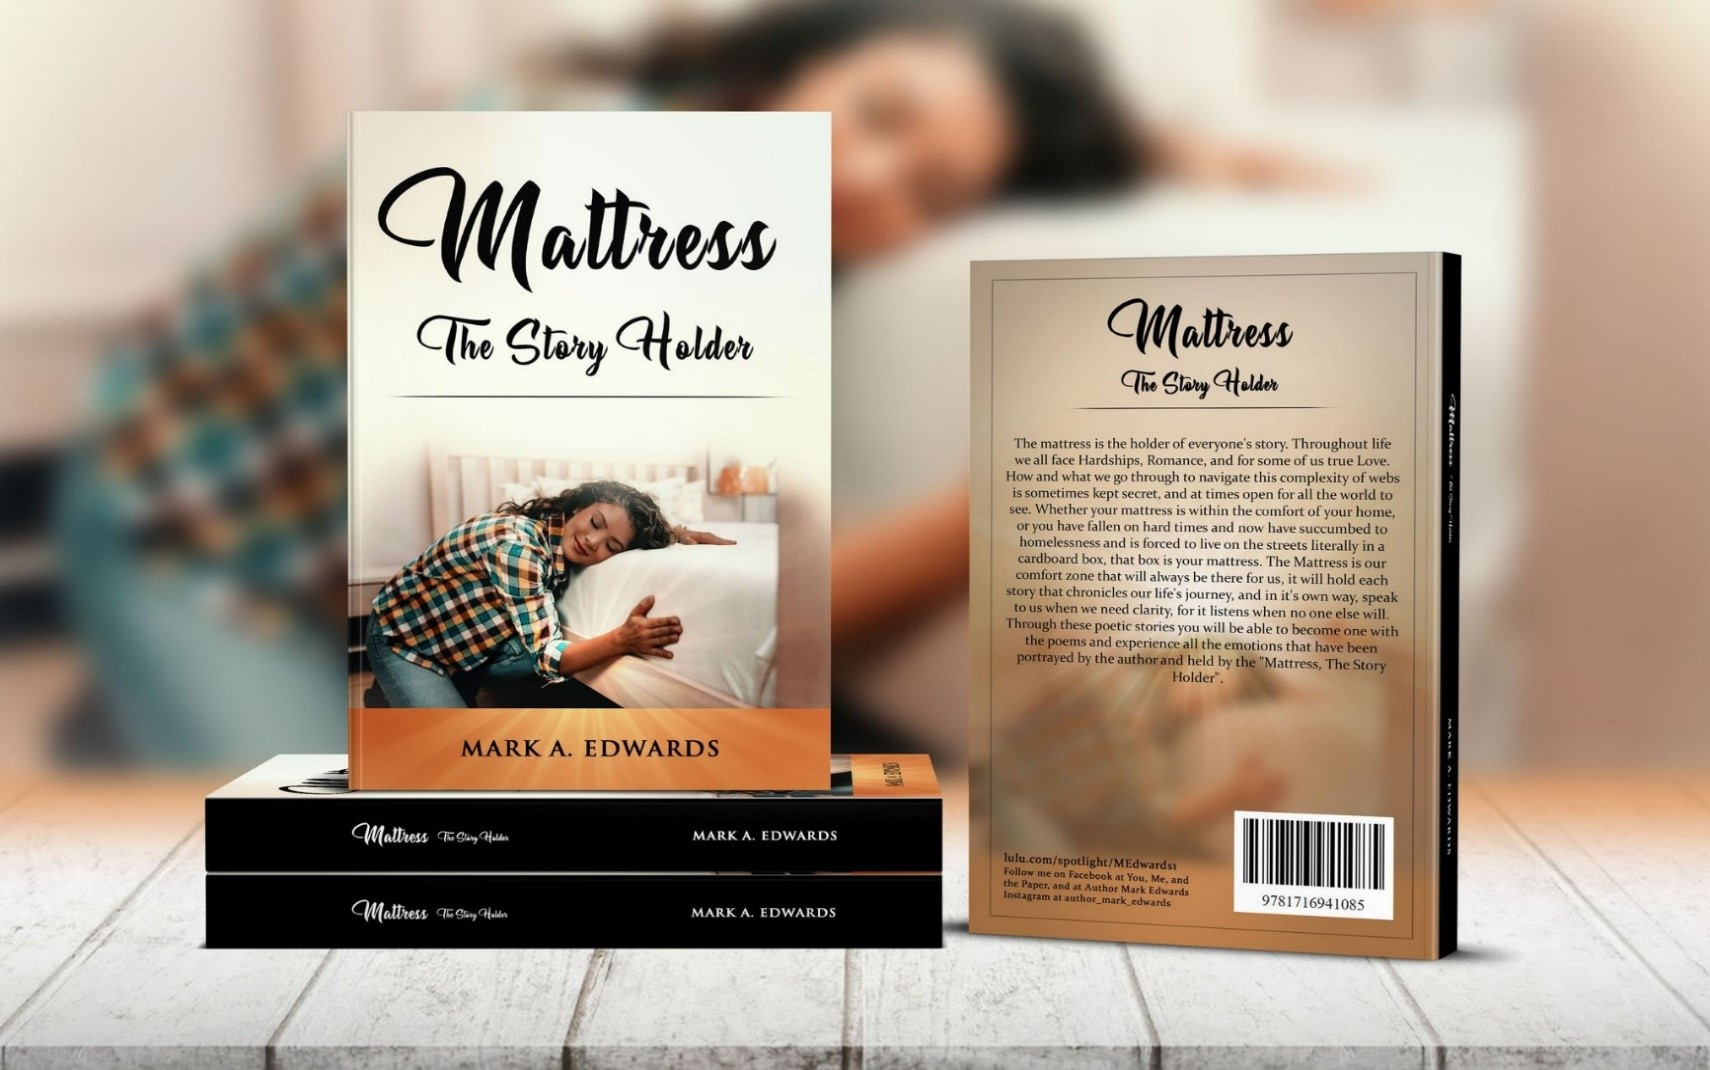 Mattress The Story Holder